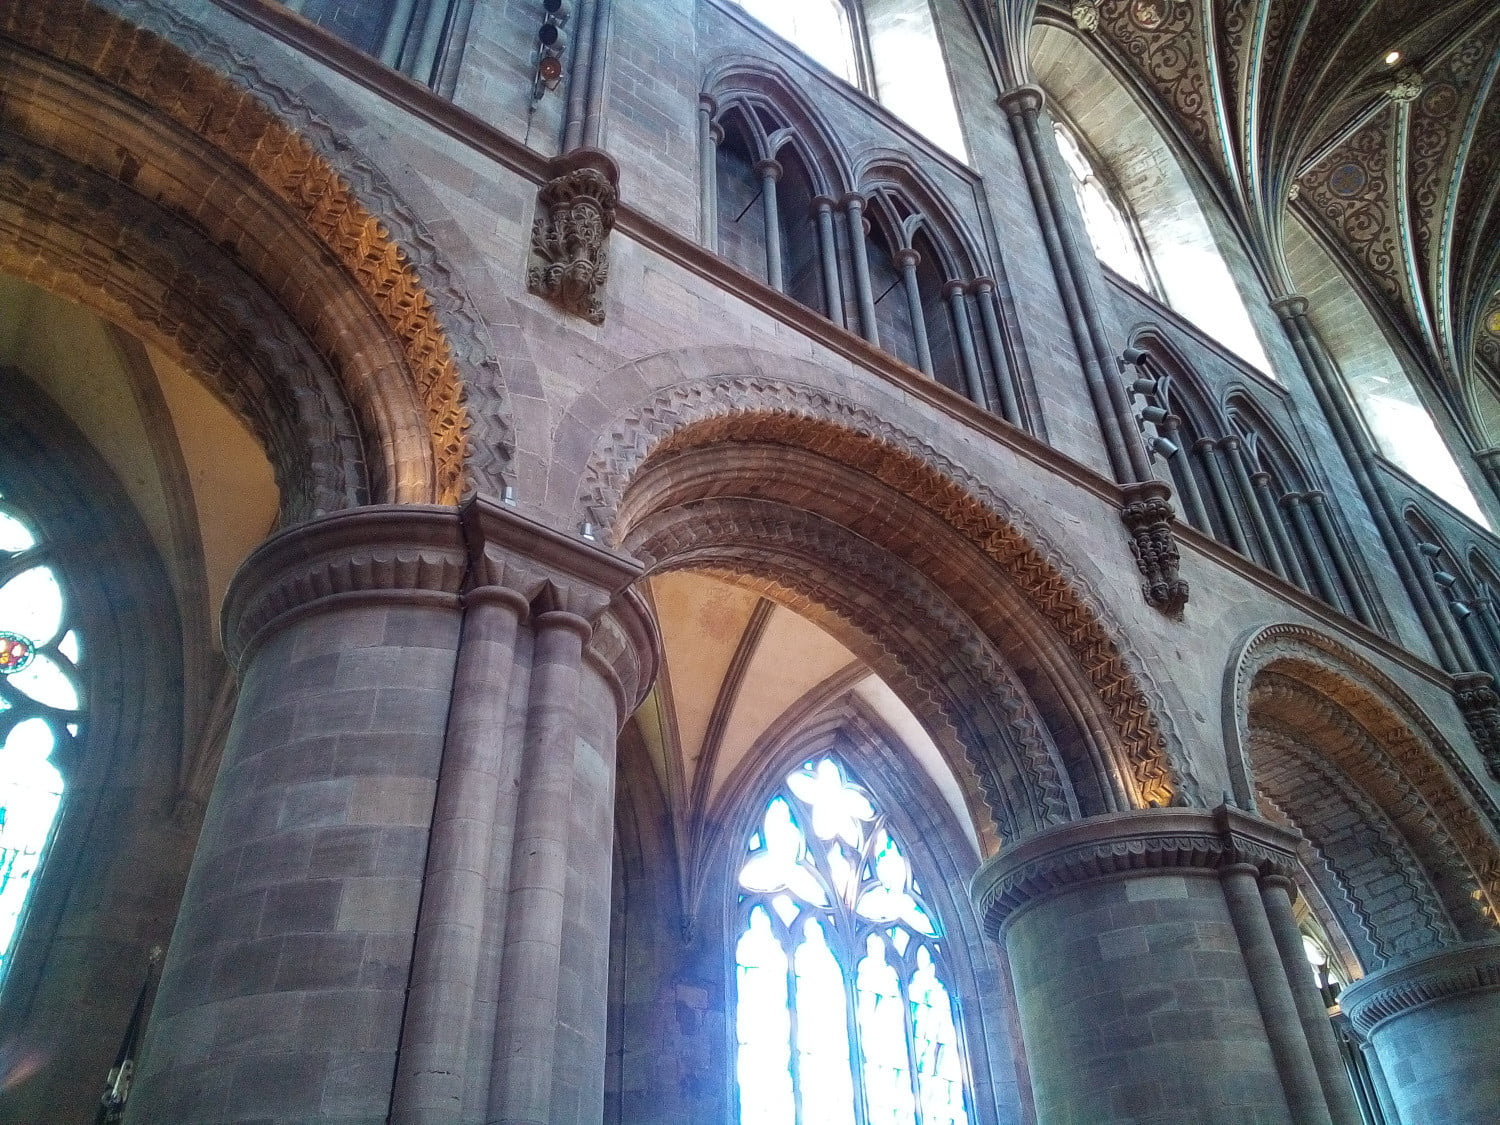 doogee s40 review camera sample cathedral interior